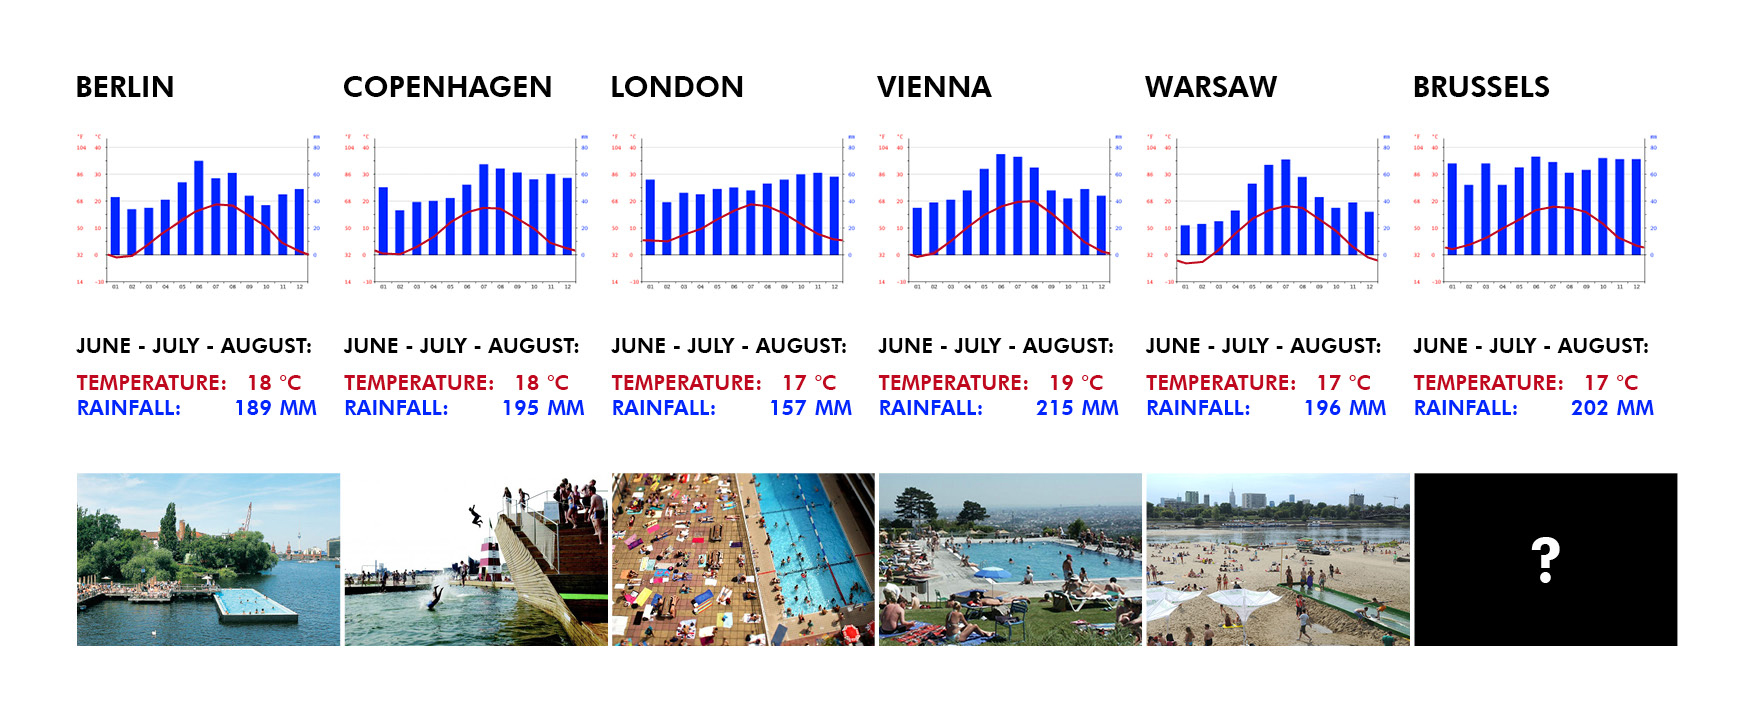 Comparison of climate profiles of Brussels and other European cities. The summer months are hardly different. Be aware, it's the average temperature of day and night, and the total rainfall from June until August.